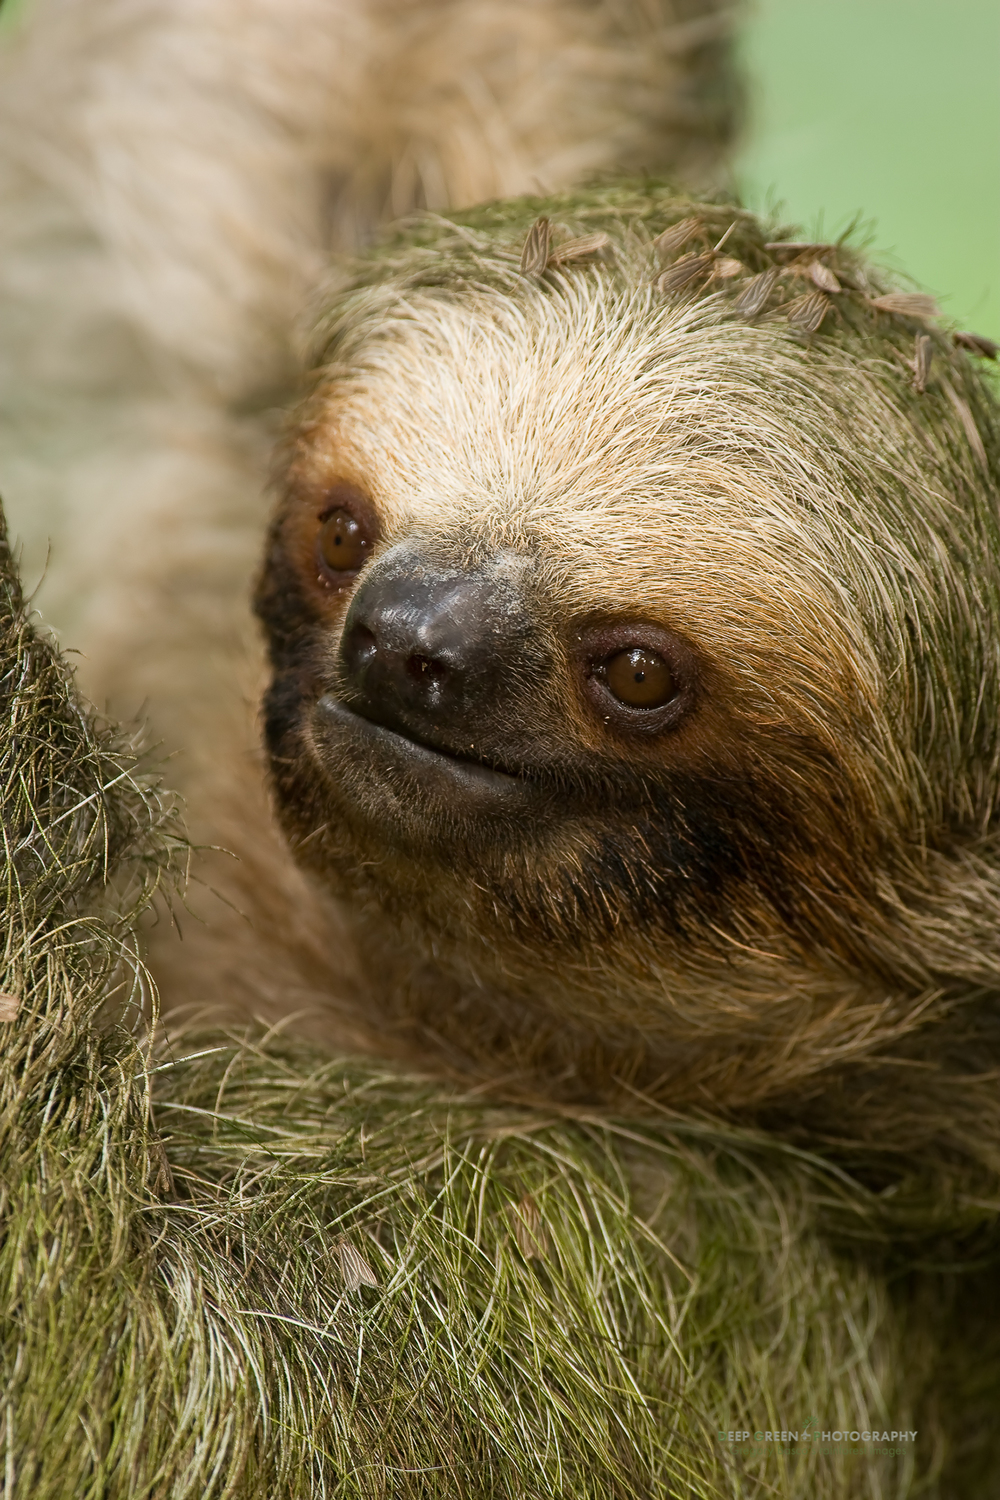 three-toed sloth closeup shows the moth that feed on the algae that grow on the sloth's fur